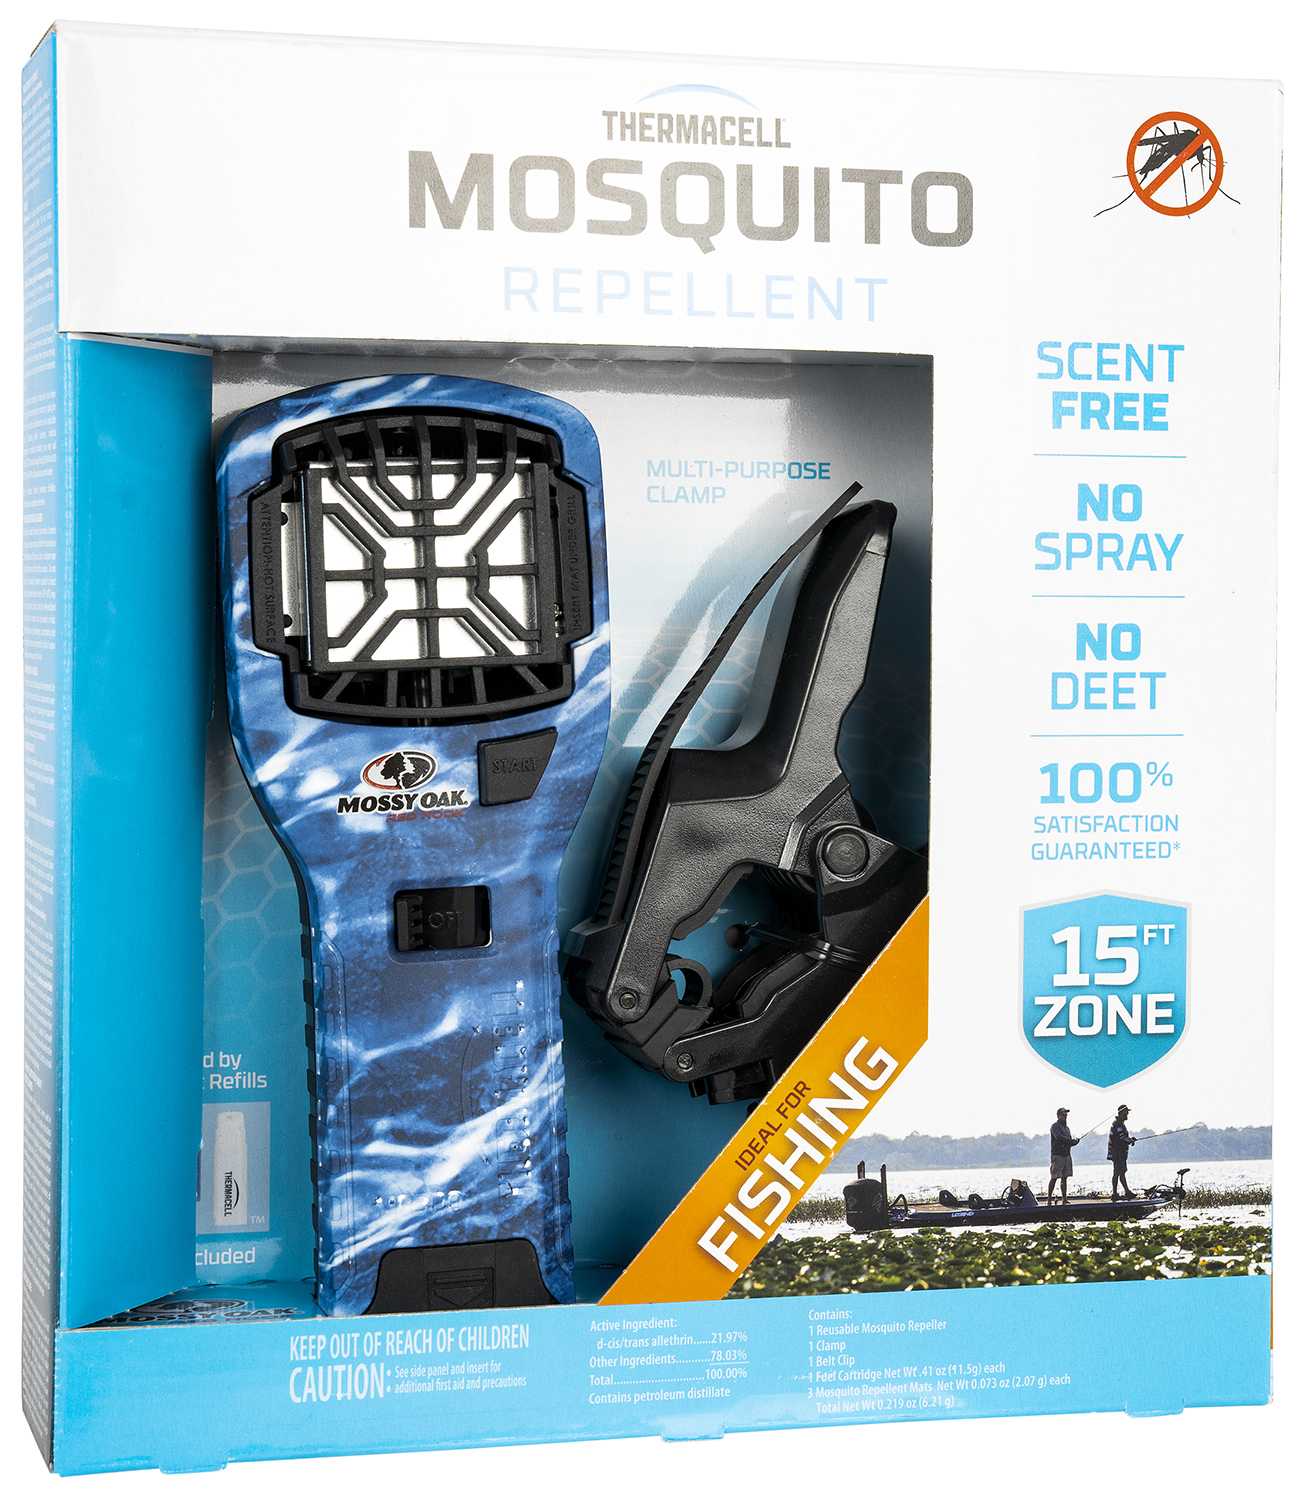 Thermacell MR300MO MR300 Portable Repeller Fishing Bundle Mossy Oak Blue Marlin Effective 15 ft Odorless Repellent Effective Up to 12 hrs